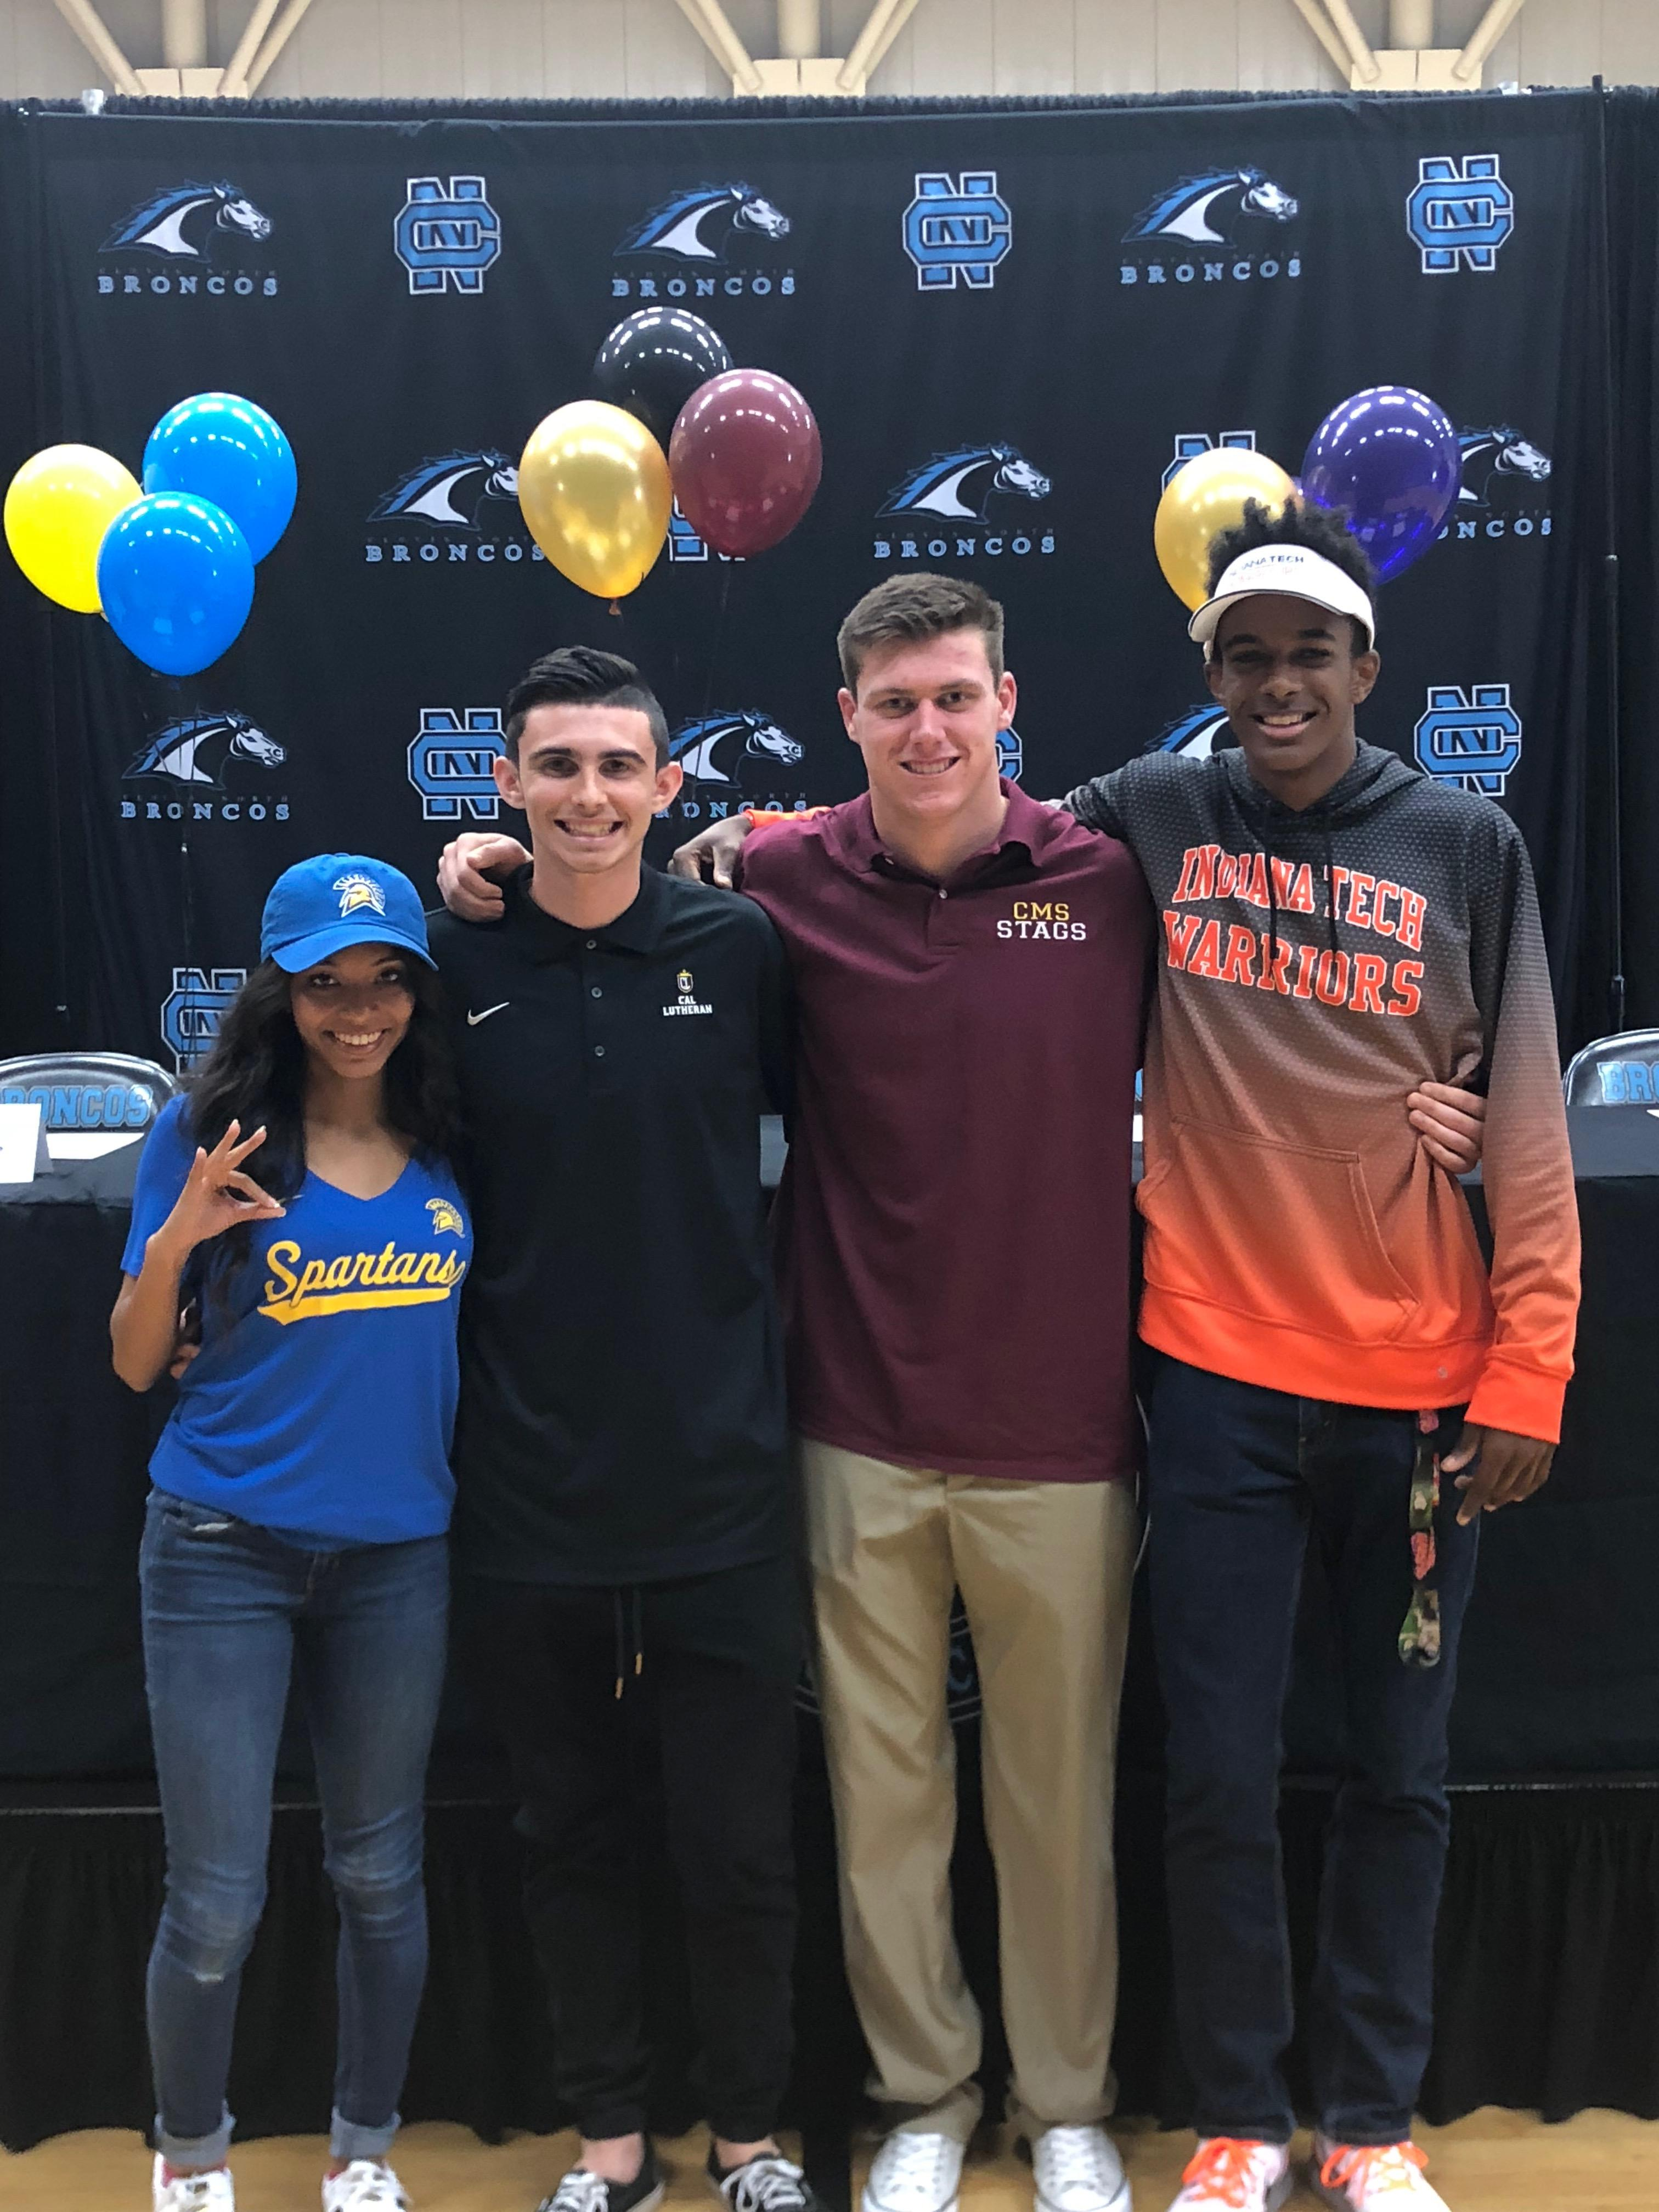 Clovis North student-athletes celebrate signing their letters of intent. From left to right: Hannah Hall, soccer, San Jose State University;{&amp;nbsp;}Mckay Severance, soccer, Cal Lutheran University; Trent Lindsey, football, Claremont McKenna College; Shomari Somerville, track and field, Indiana Institute of Technology.<p></p>